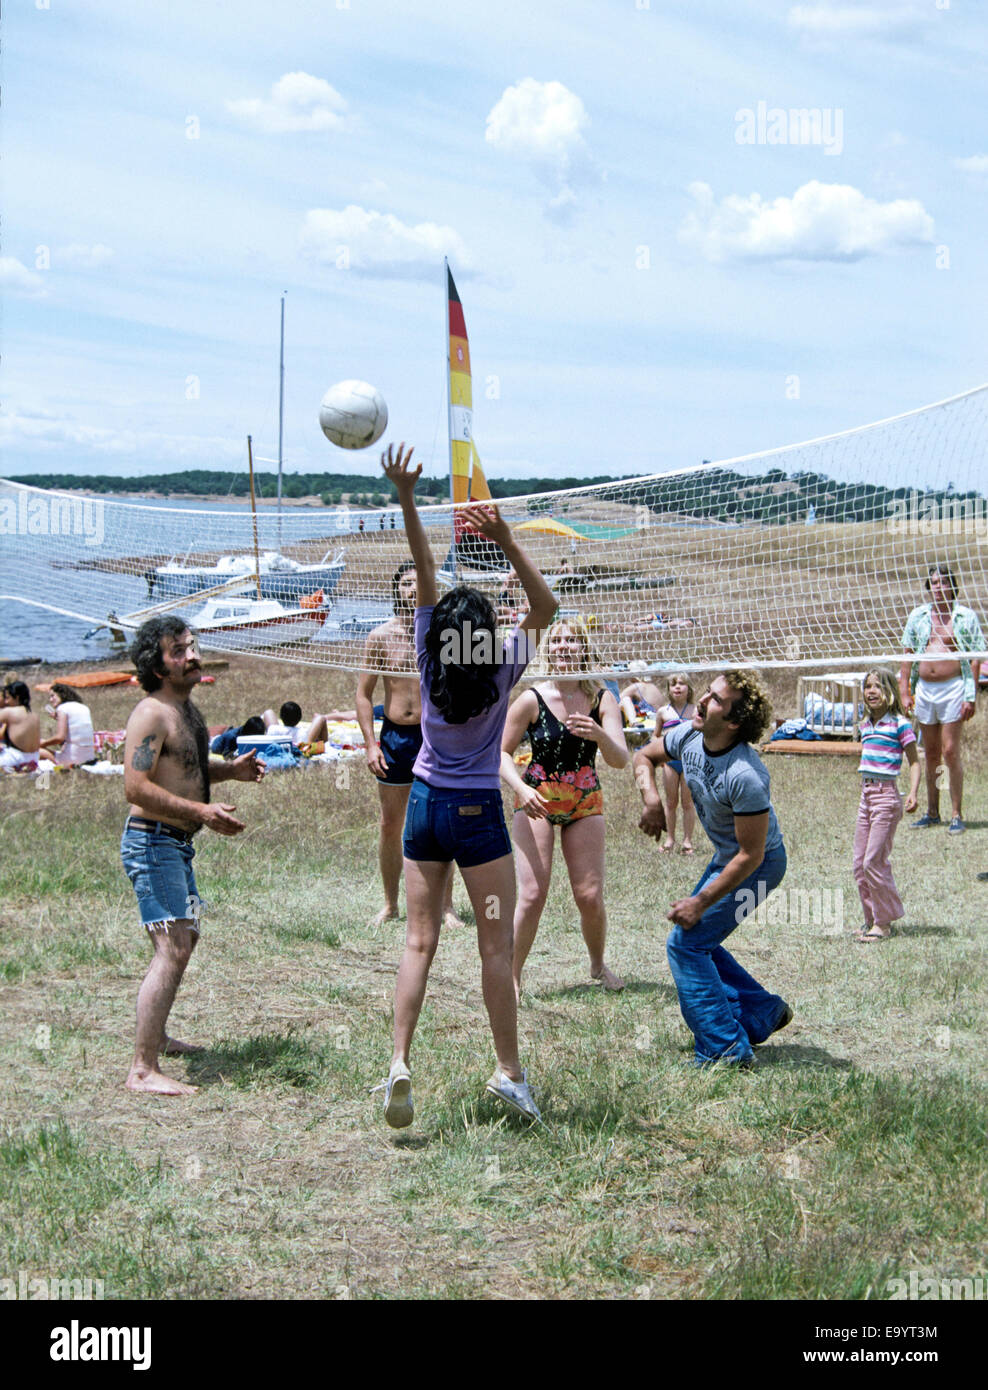 young adults play volleyball on holiday weekend in California - Stock Image